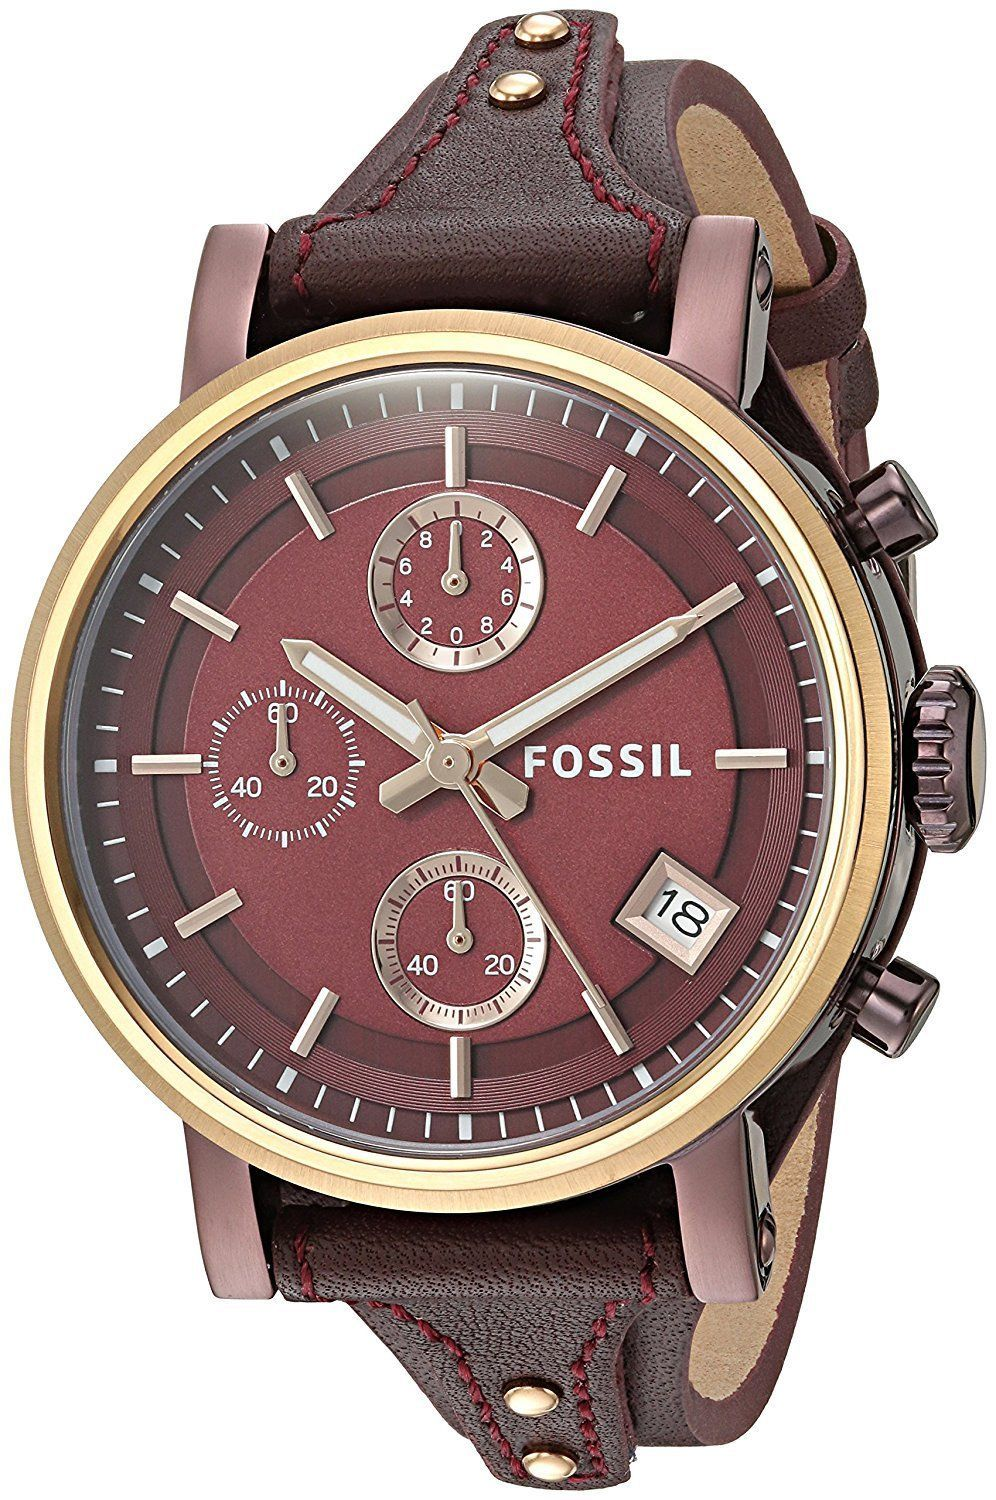 3c9822e57d0 Fossil Womens ES4114 Original Boyfriend Chronograph Red Leather Watch